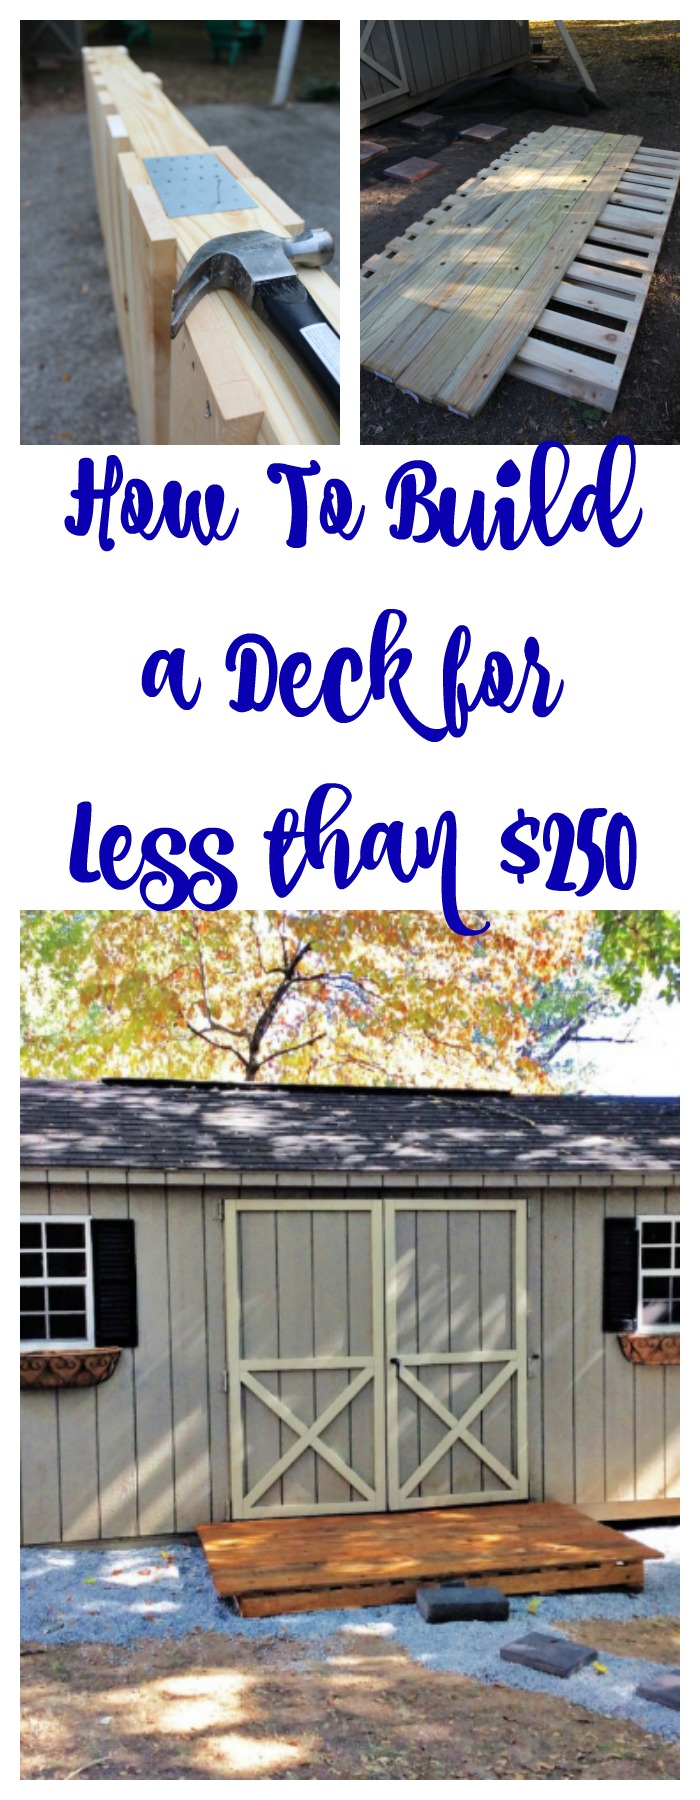 how-to-build-a-deck-for-less-than-250